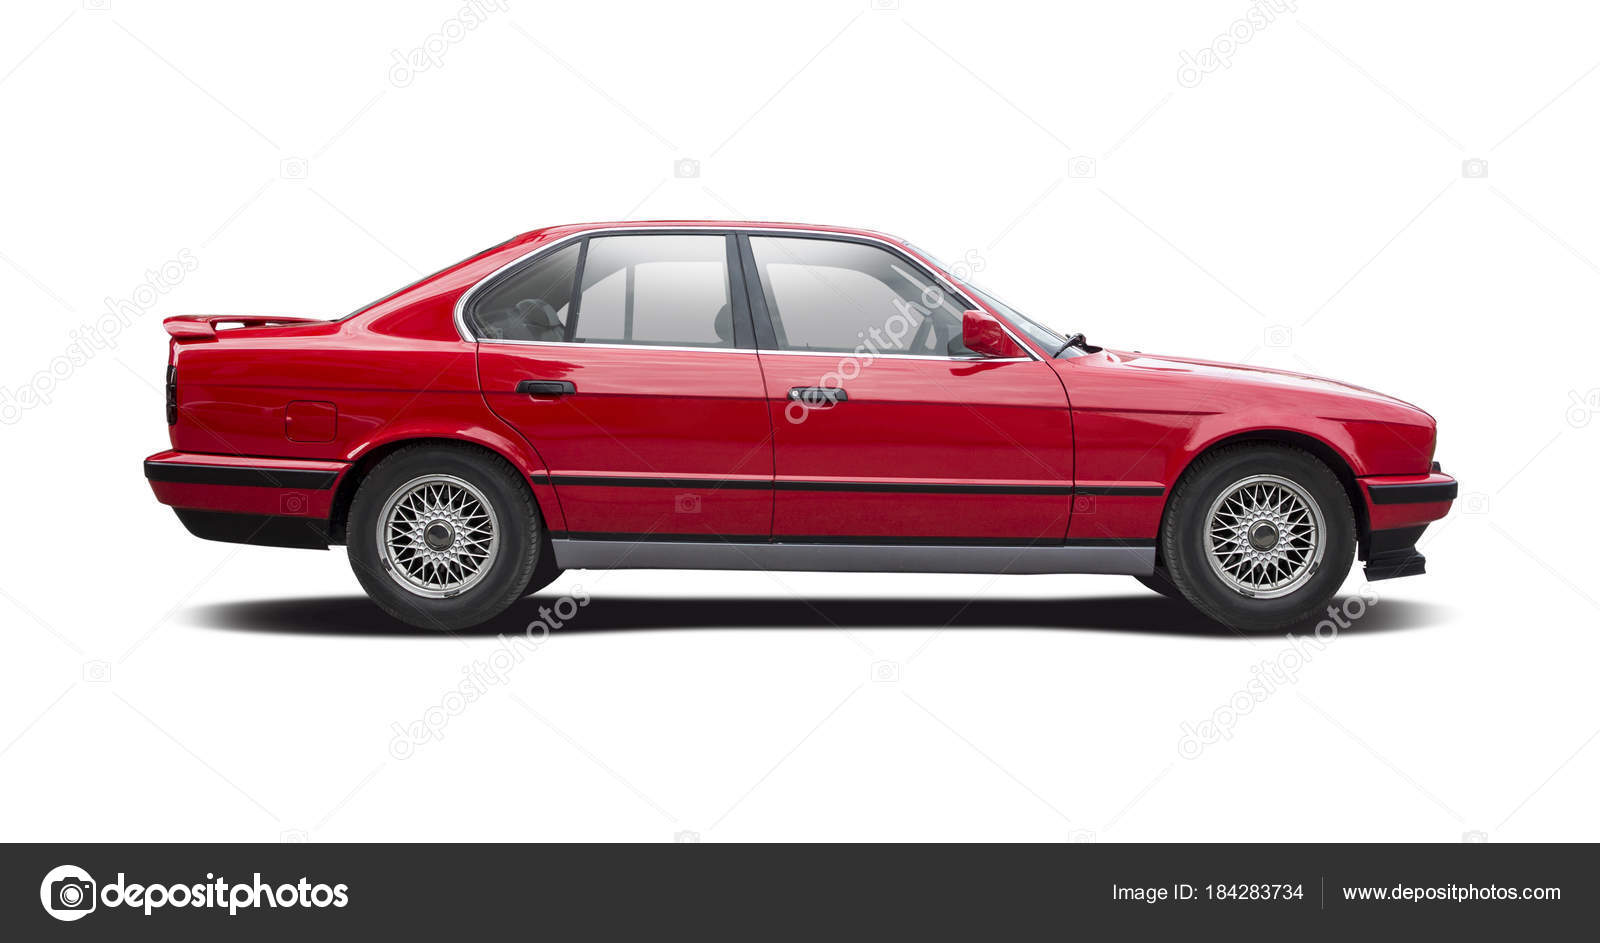 Red Family Sedan Premium Car Side View Isolated White Background